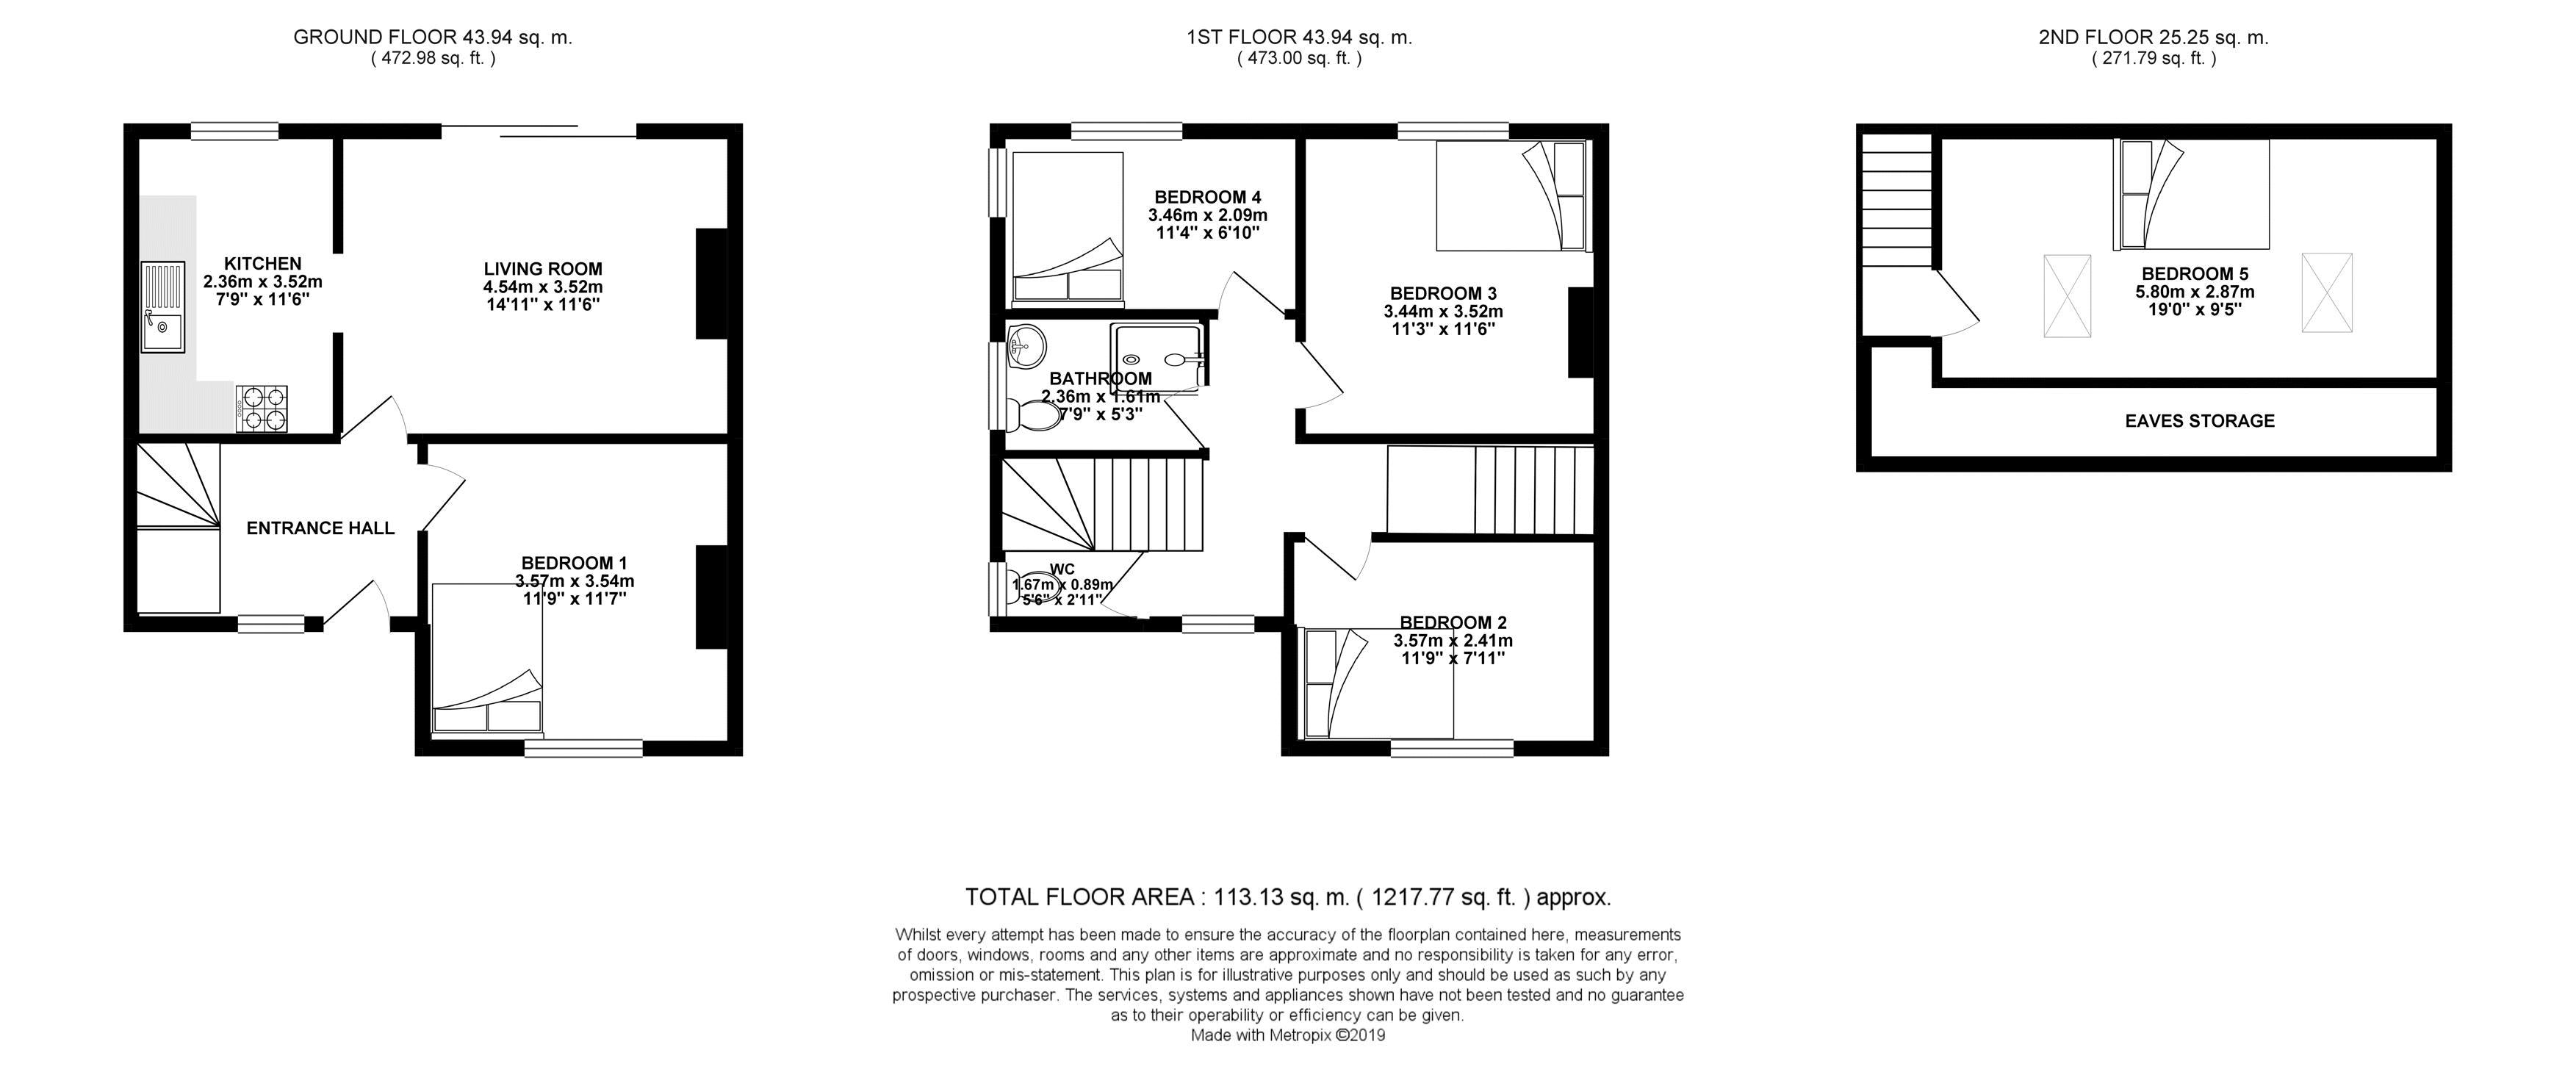 Floor plans for Barcombe Road, Brighton property for sale in Moulsecoomb, Brighton by Coapt